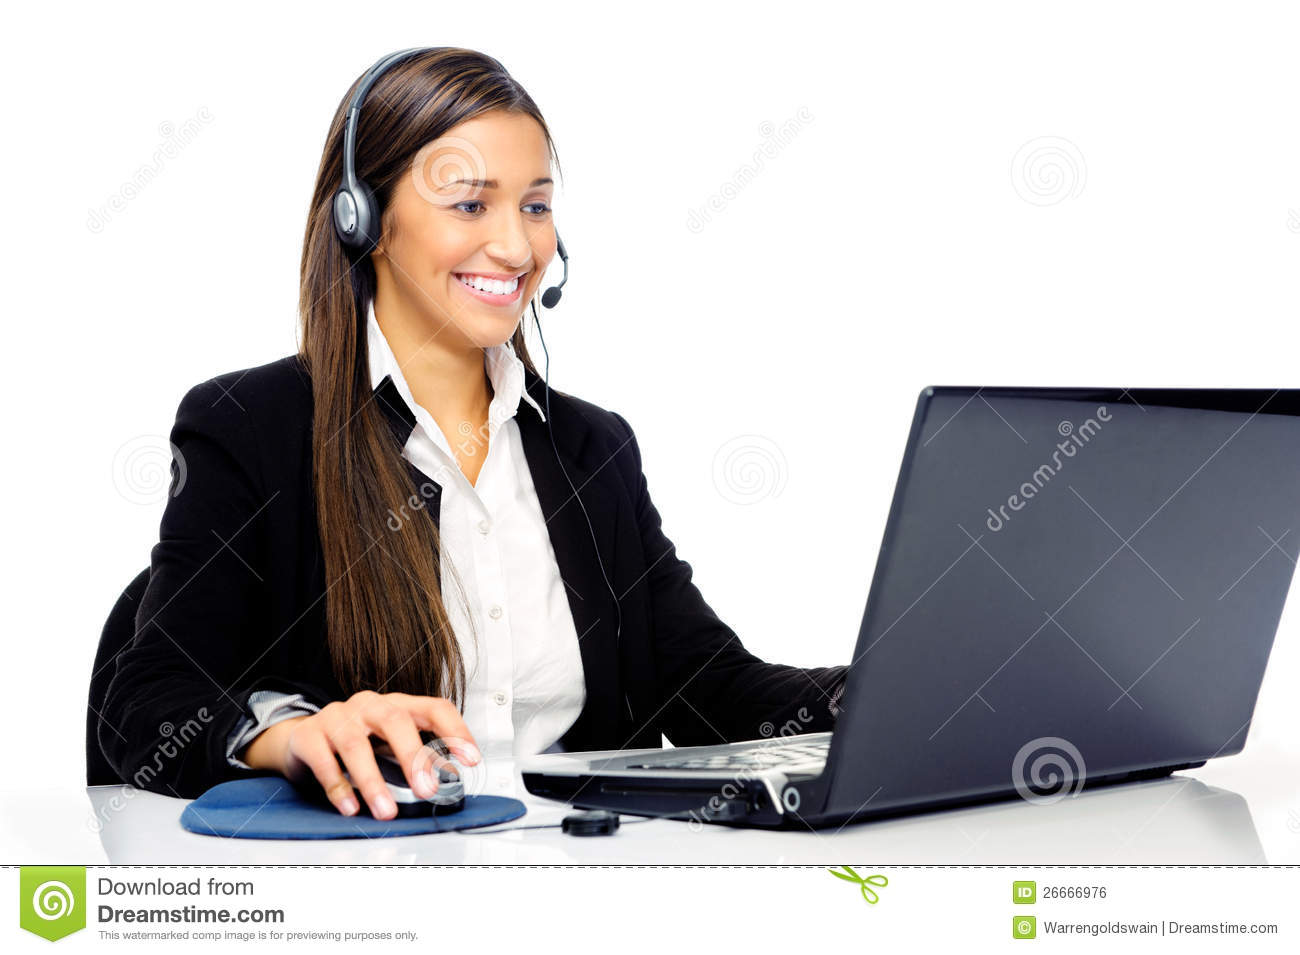 Help Desk Call Center Royalty Free Stock Image  Image 26666976